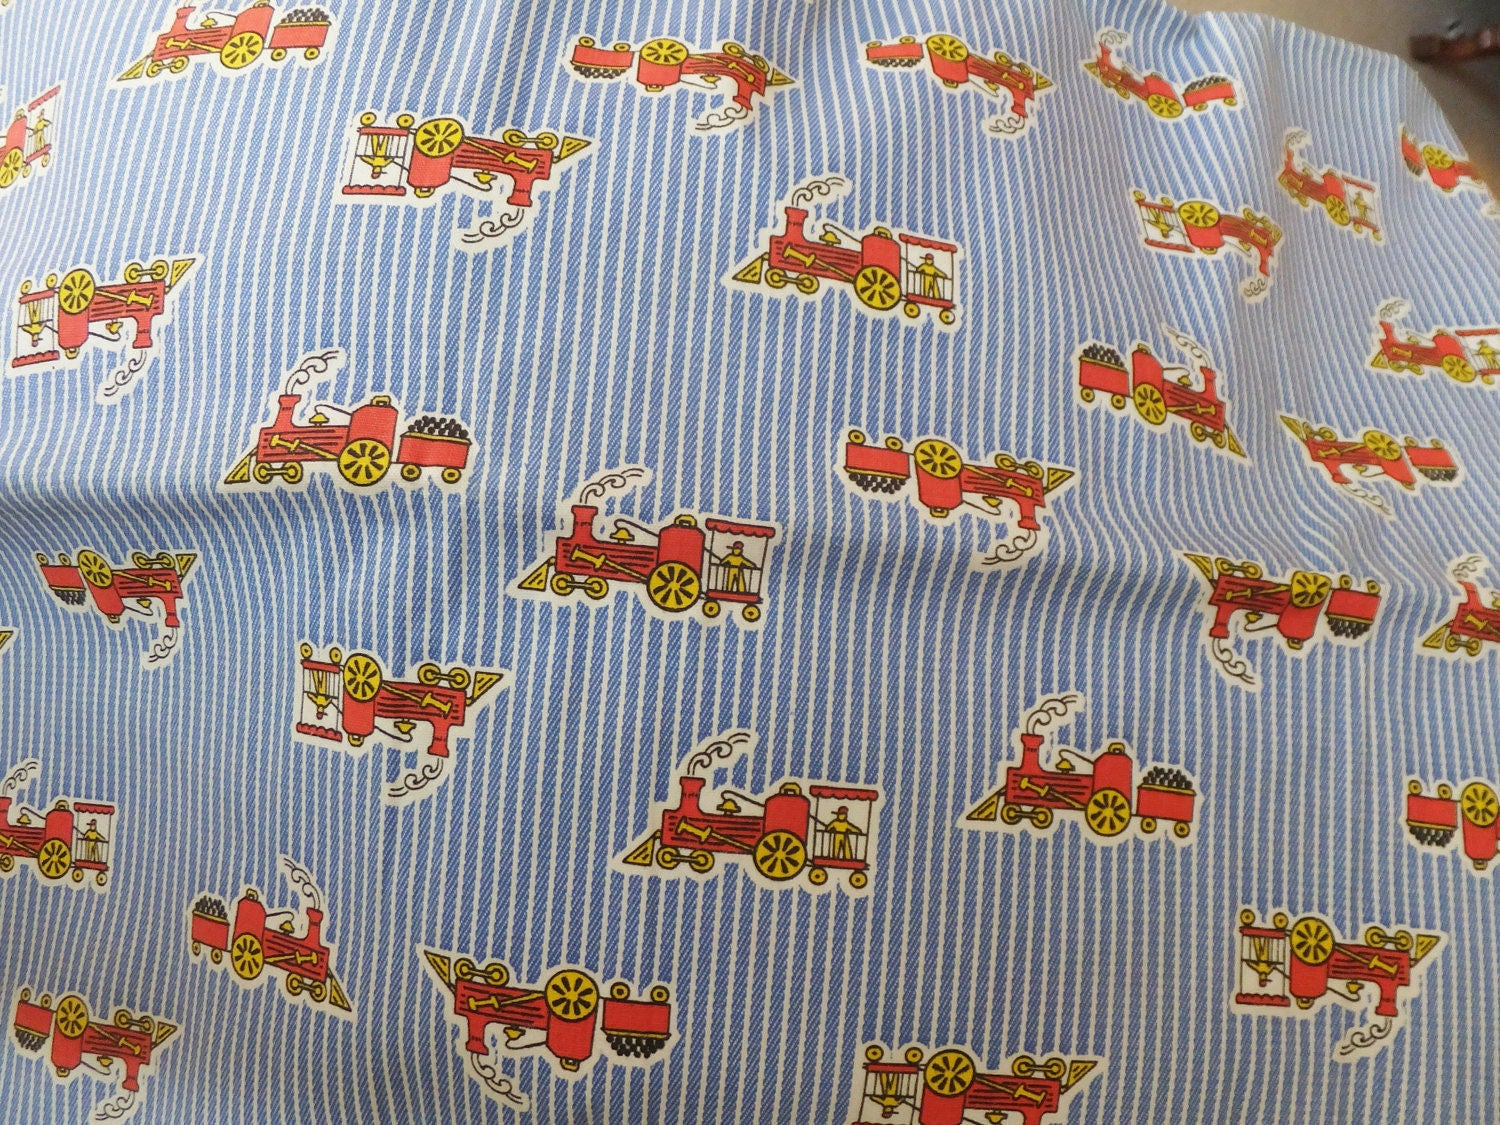 Vintage train fabric mid century children 39 s fabric for Kids train fabric